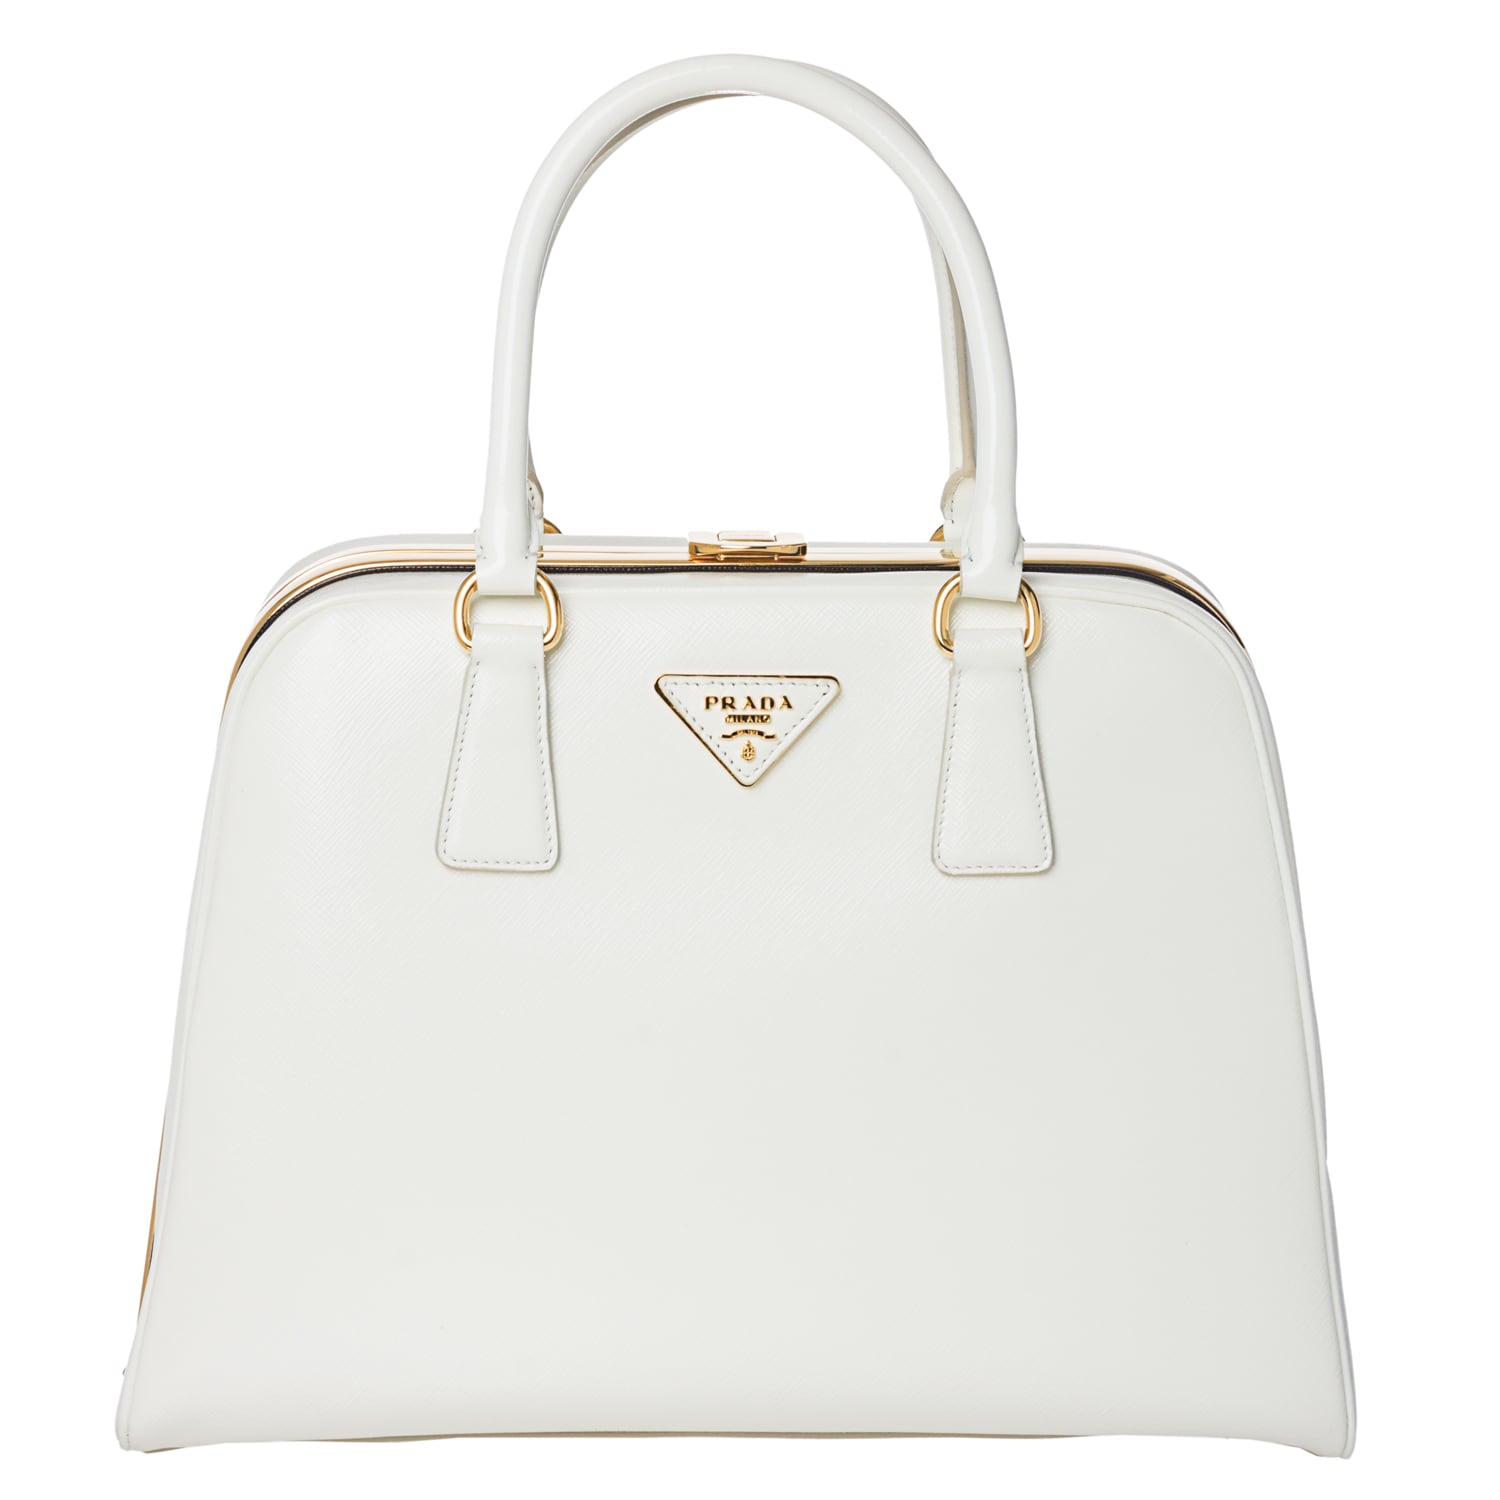 Prada White Saffiano Leather Pyramid Frame Bowler Bag